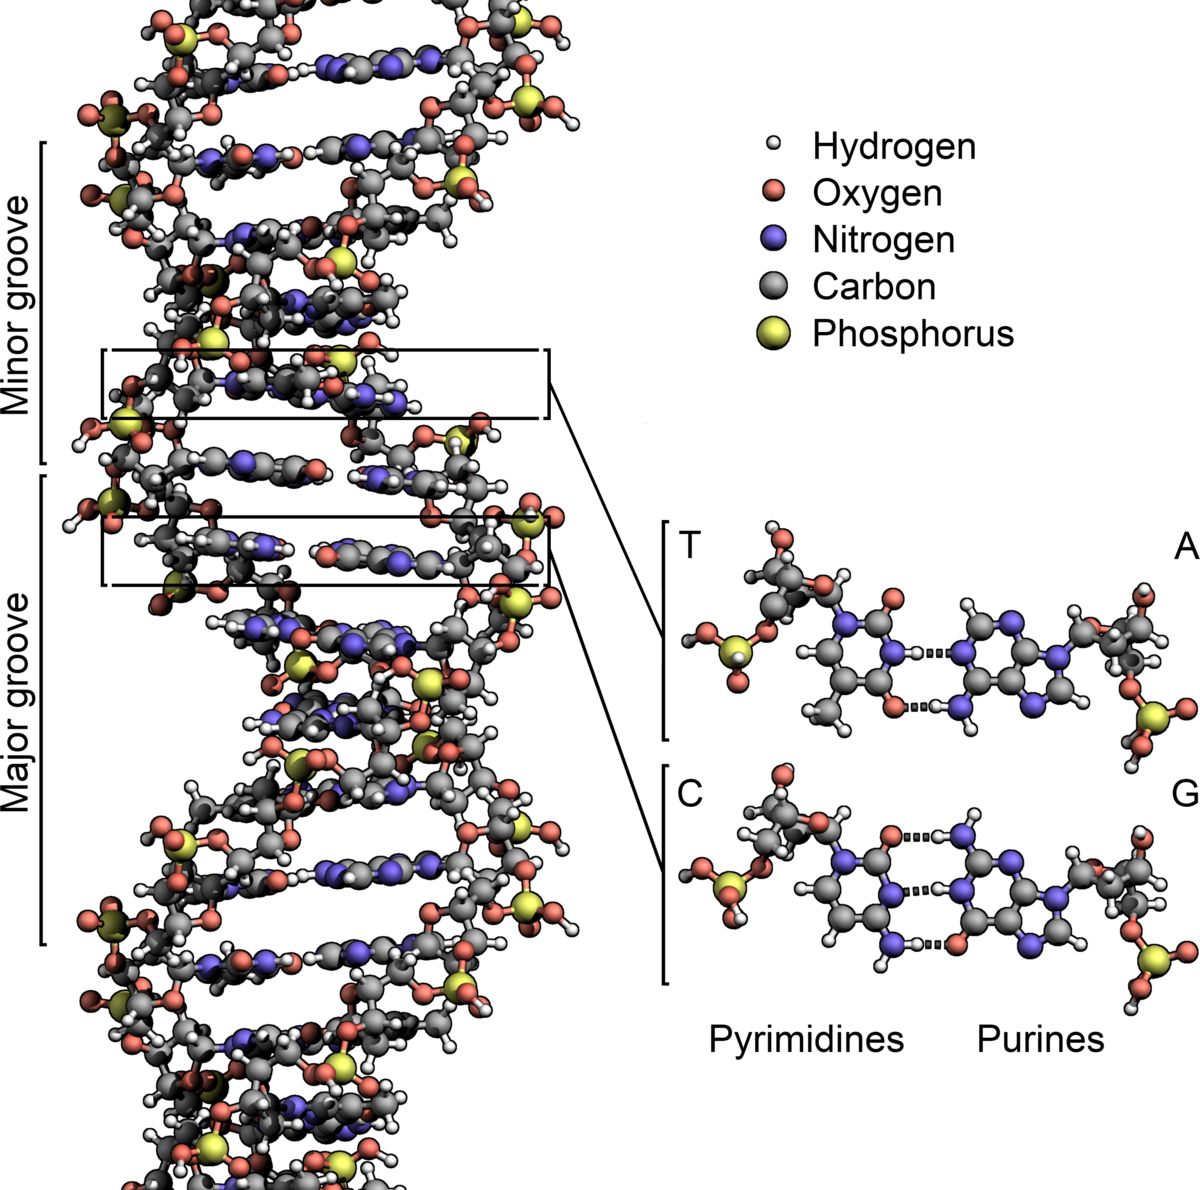 Dna wikipedia den frie encyklop di - Protege table transparent epais ...